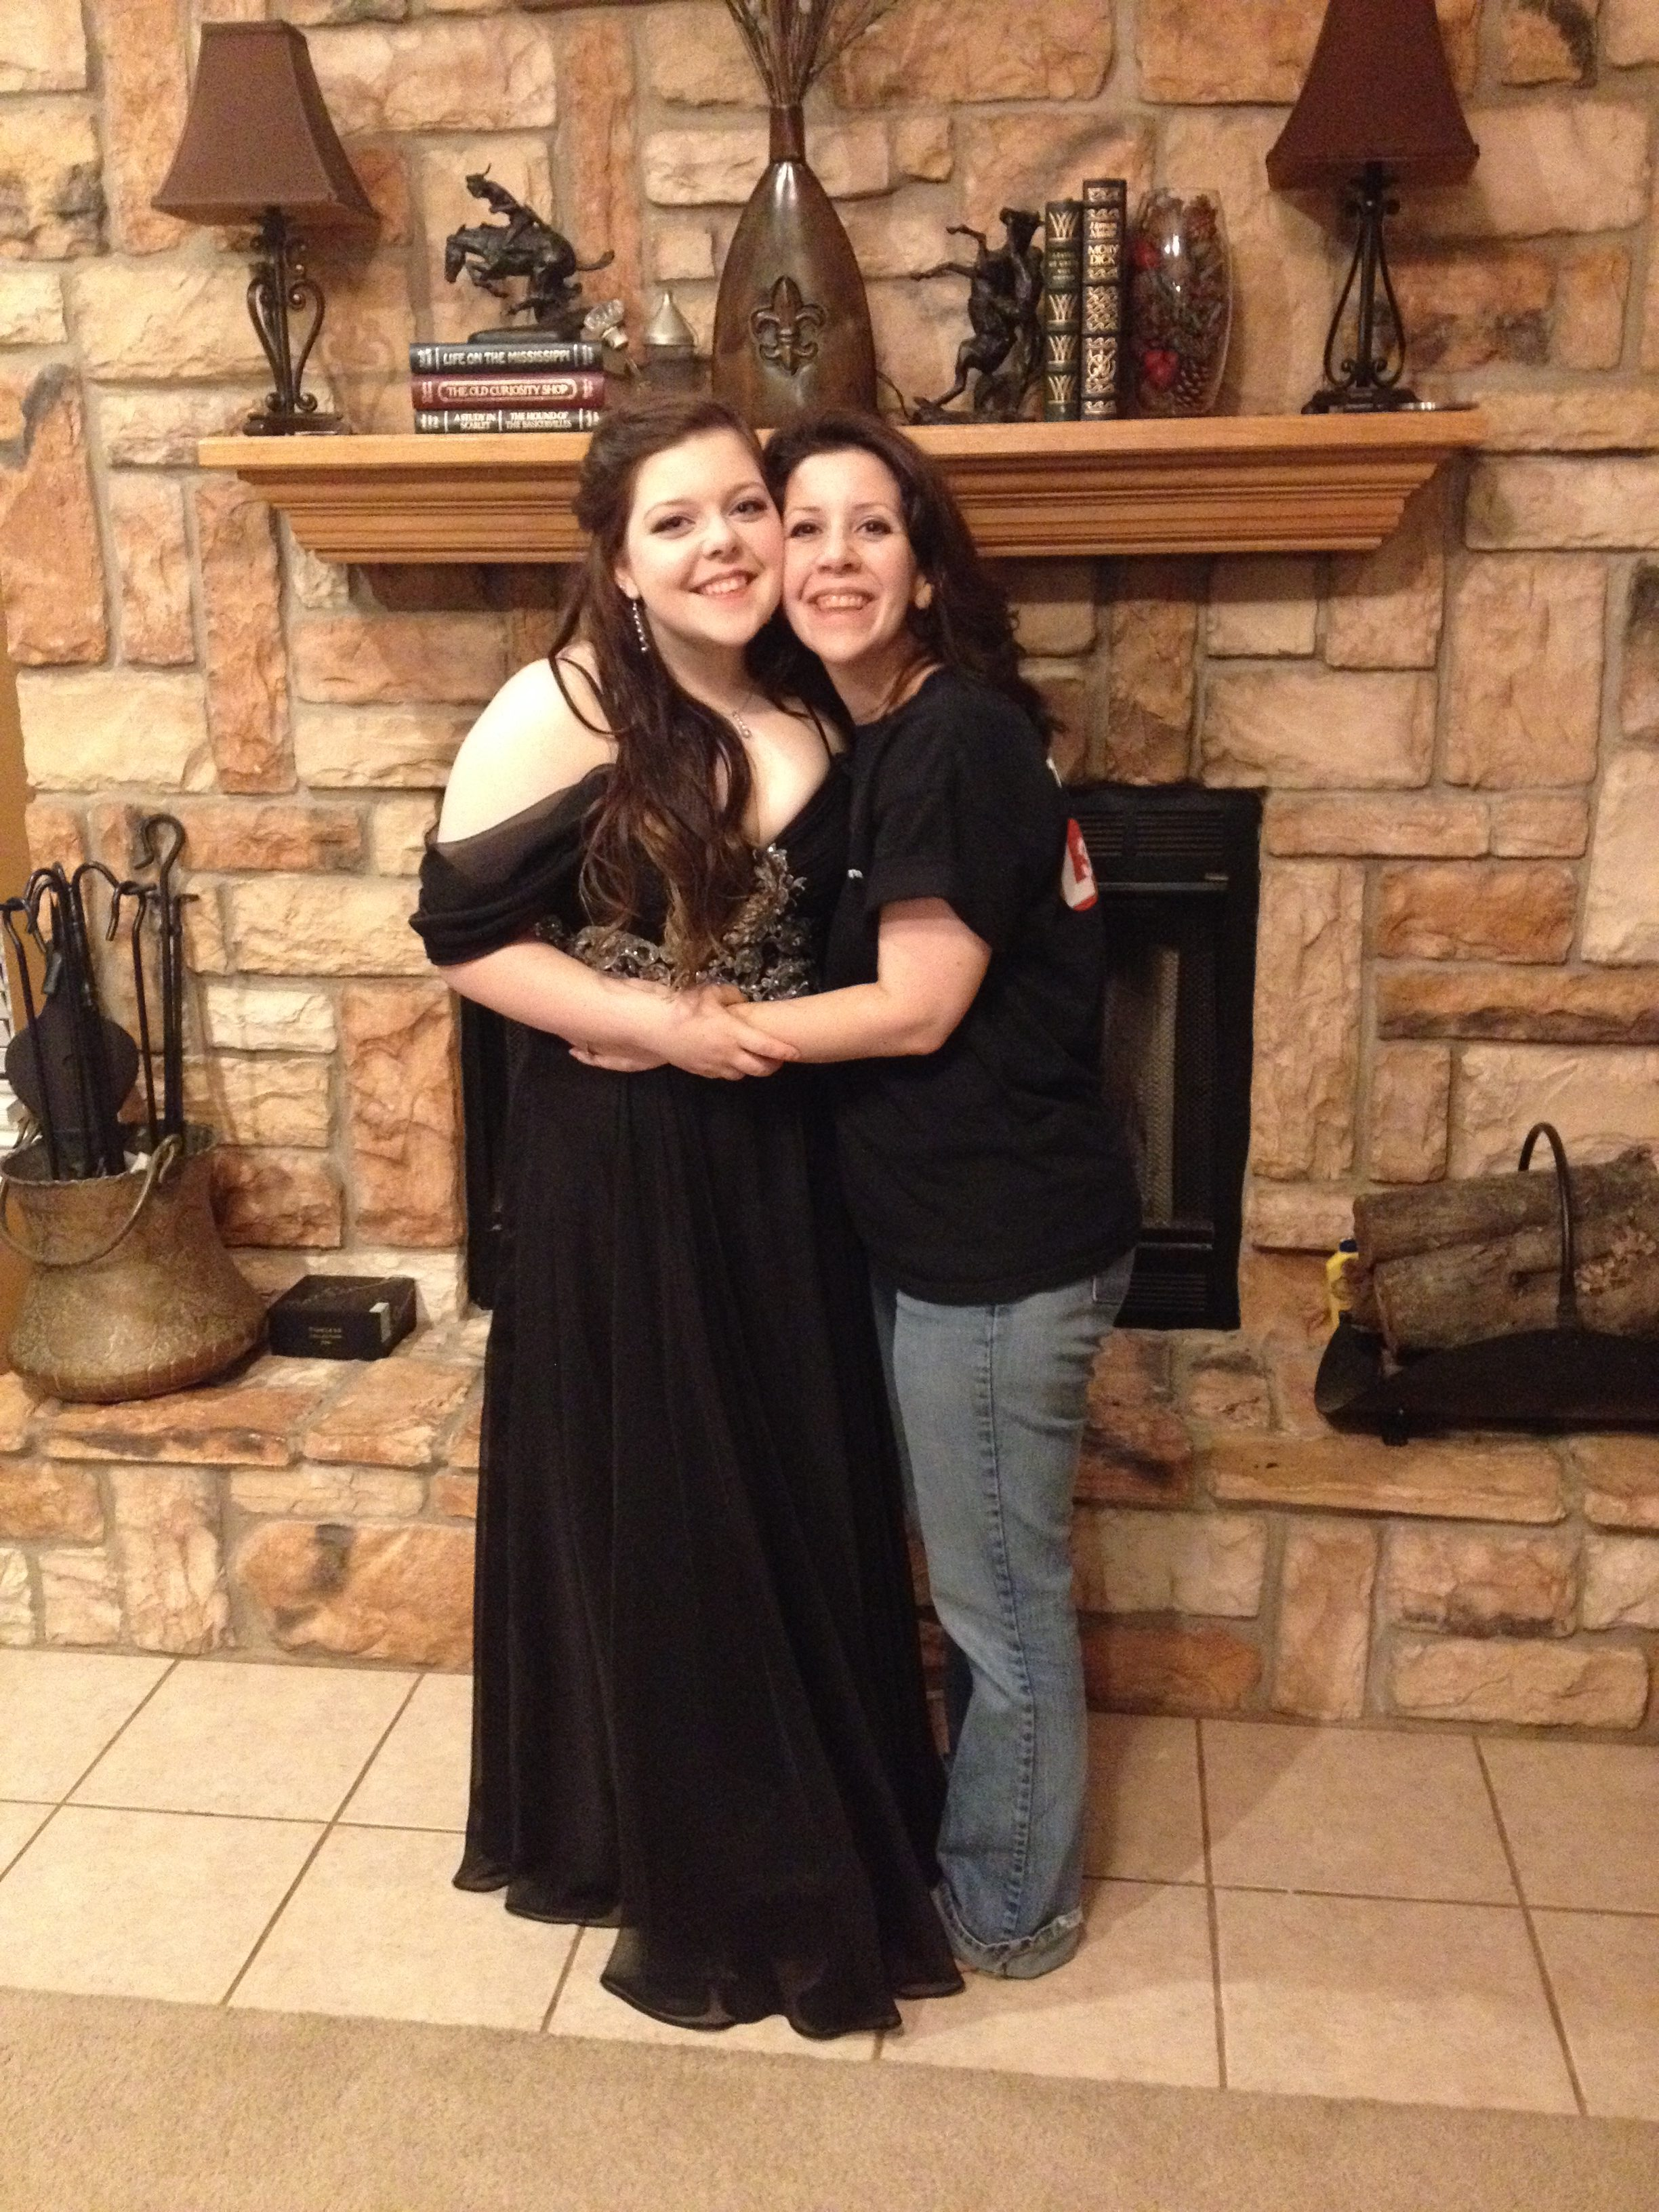 A picture of the writer with her daughter, who is wearing a beautiful, long, black dress.